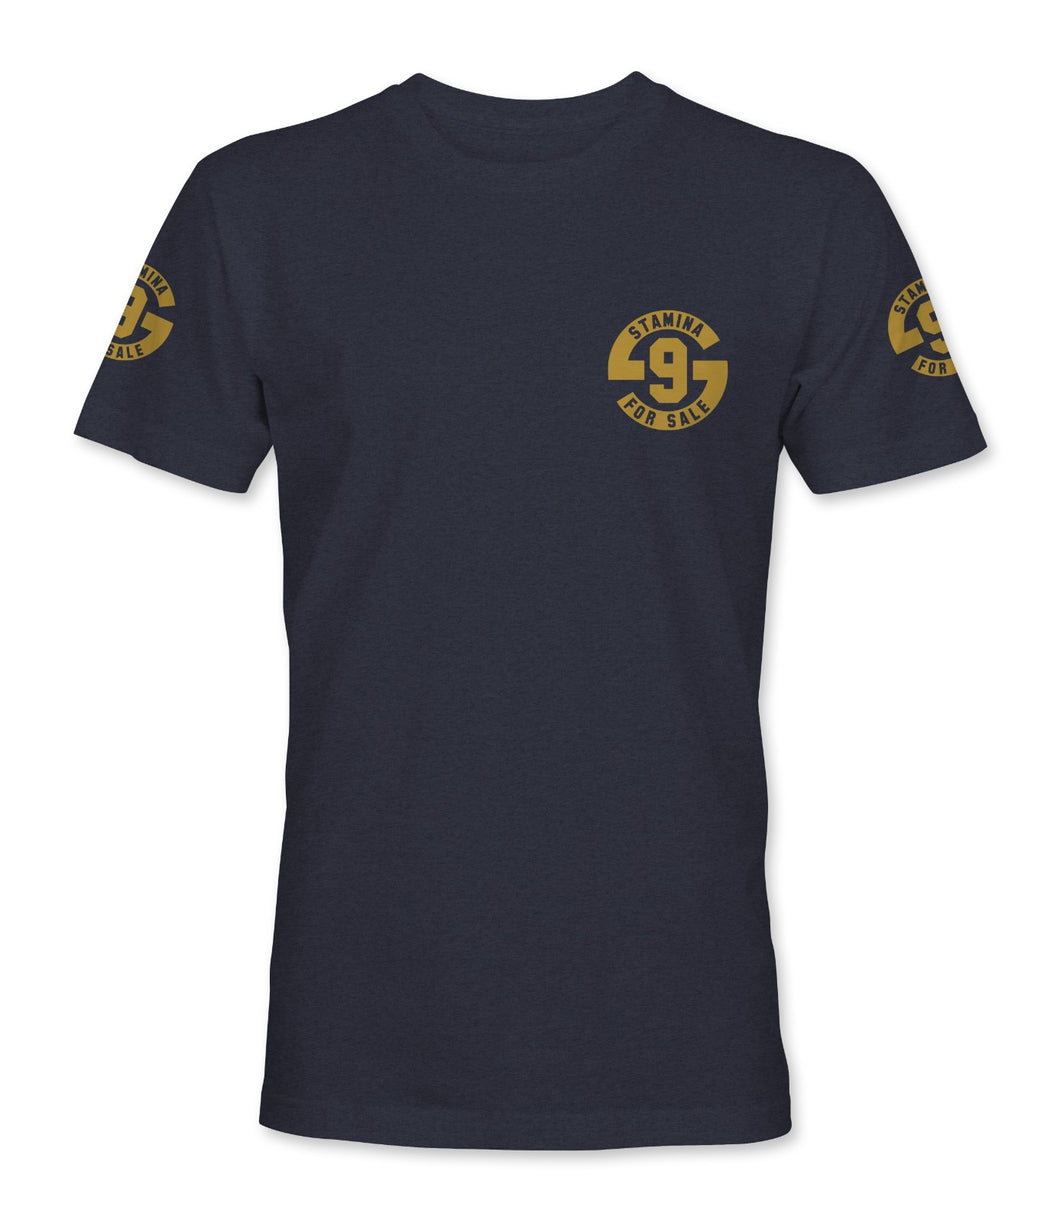 Stamina for Sale - Navy with Metallic Gold Print - Original